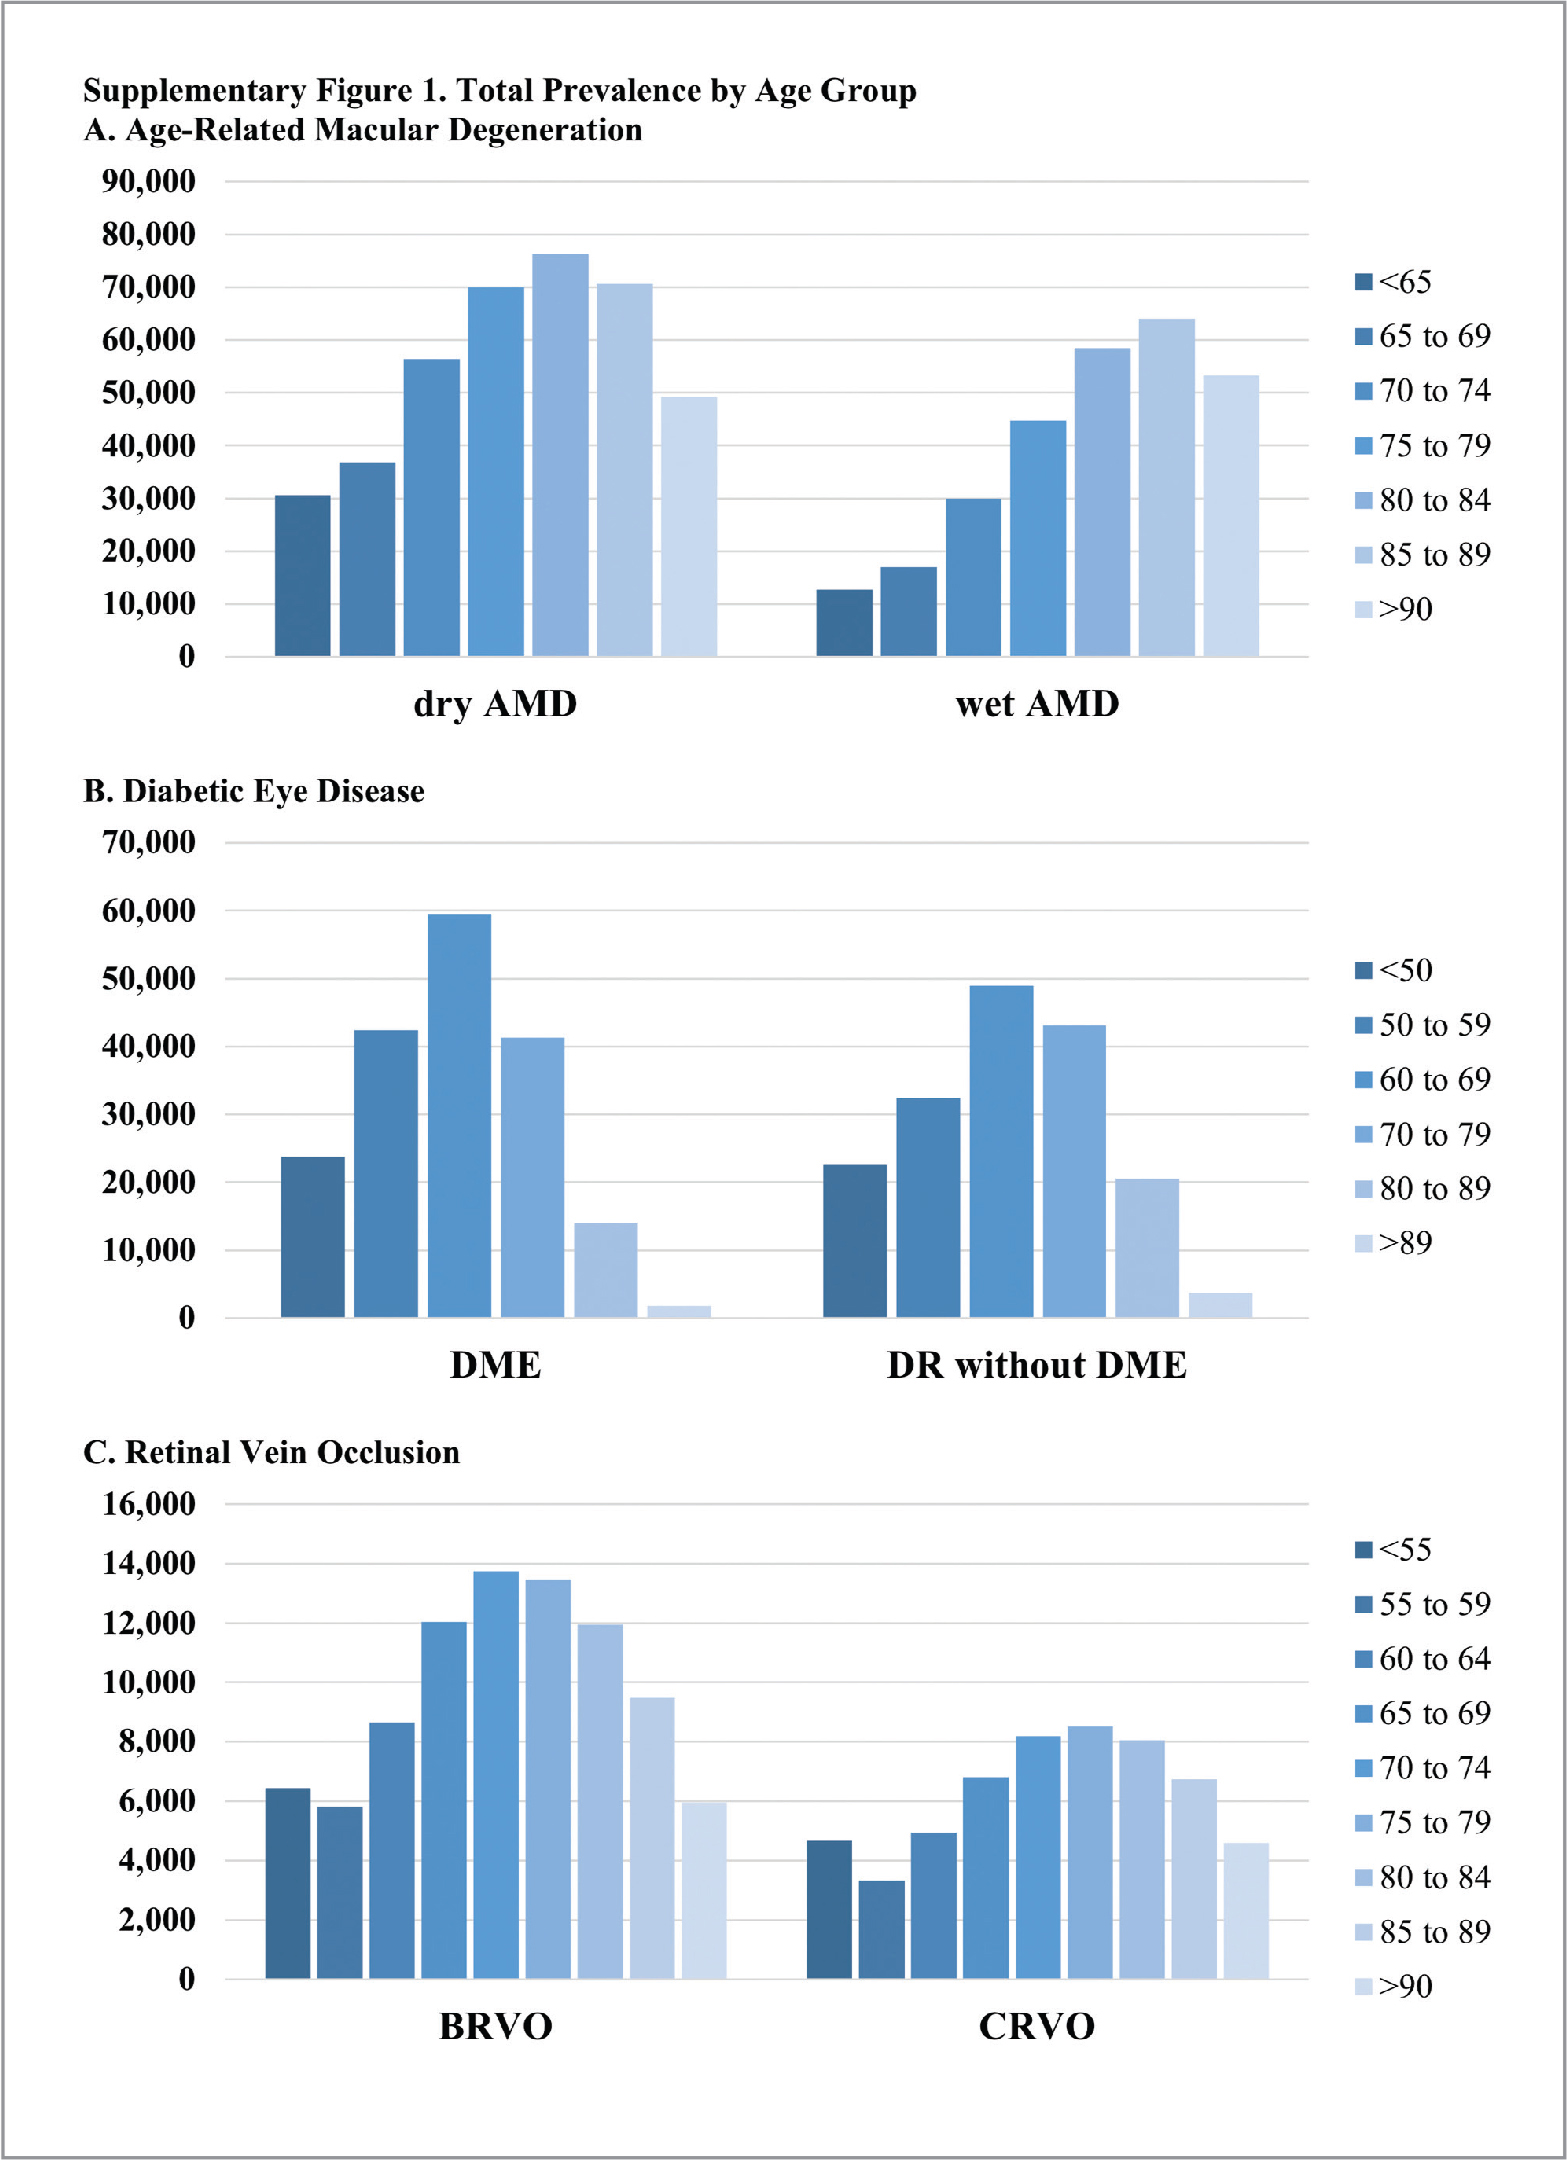 (A) Total prevalence as distinct number of patients with age-related macular degeneration (AMD) seen during the entire 6-year period. (B) Total prevalence as distinct number of patients with diabetic macular edema (DME) and diabetic retinopathy (DR) without DME seen during the entire 6-year period. (C) Total prevalence as distinct number of patients with branch retinal vein occlusion (BRVO) and central retinal vein occlusion (CRVO) seen during the entire 6-year period.